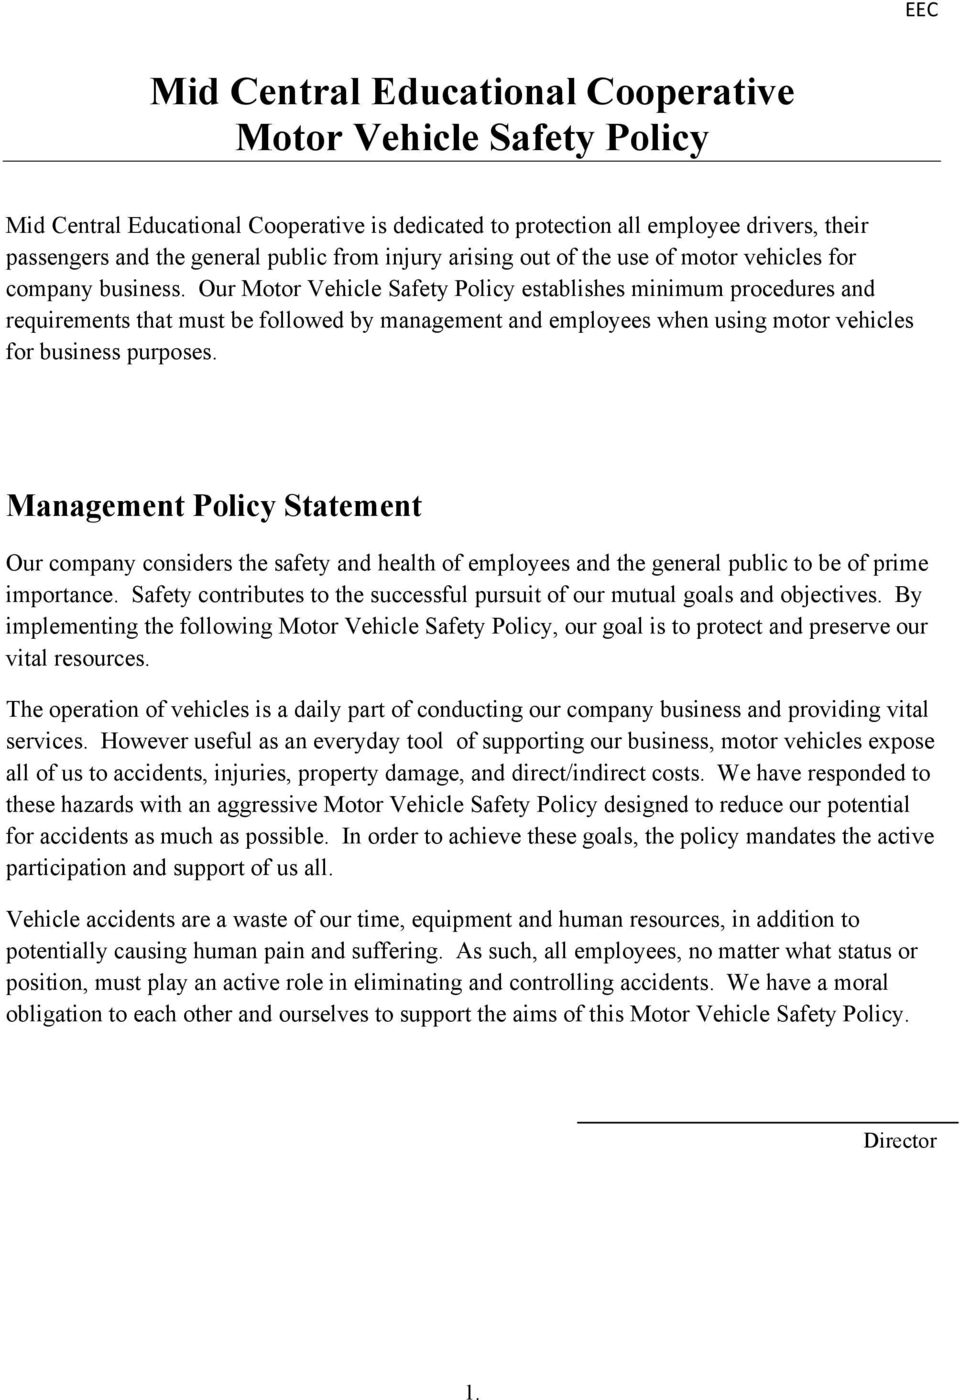 Our Motor Vehicle Safety Policy establishes minimum procedures and requirements that must be followed by management and employees when using motor vehicles for business purposes.